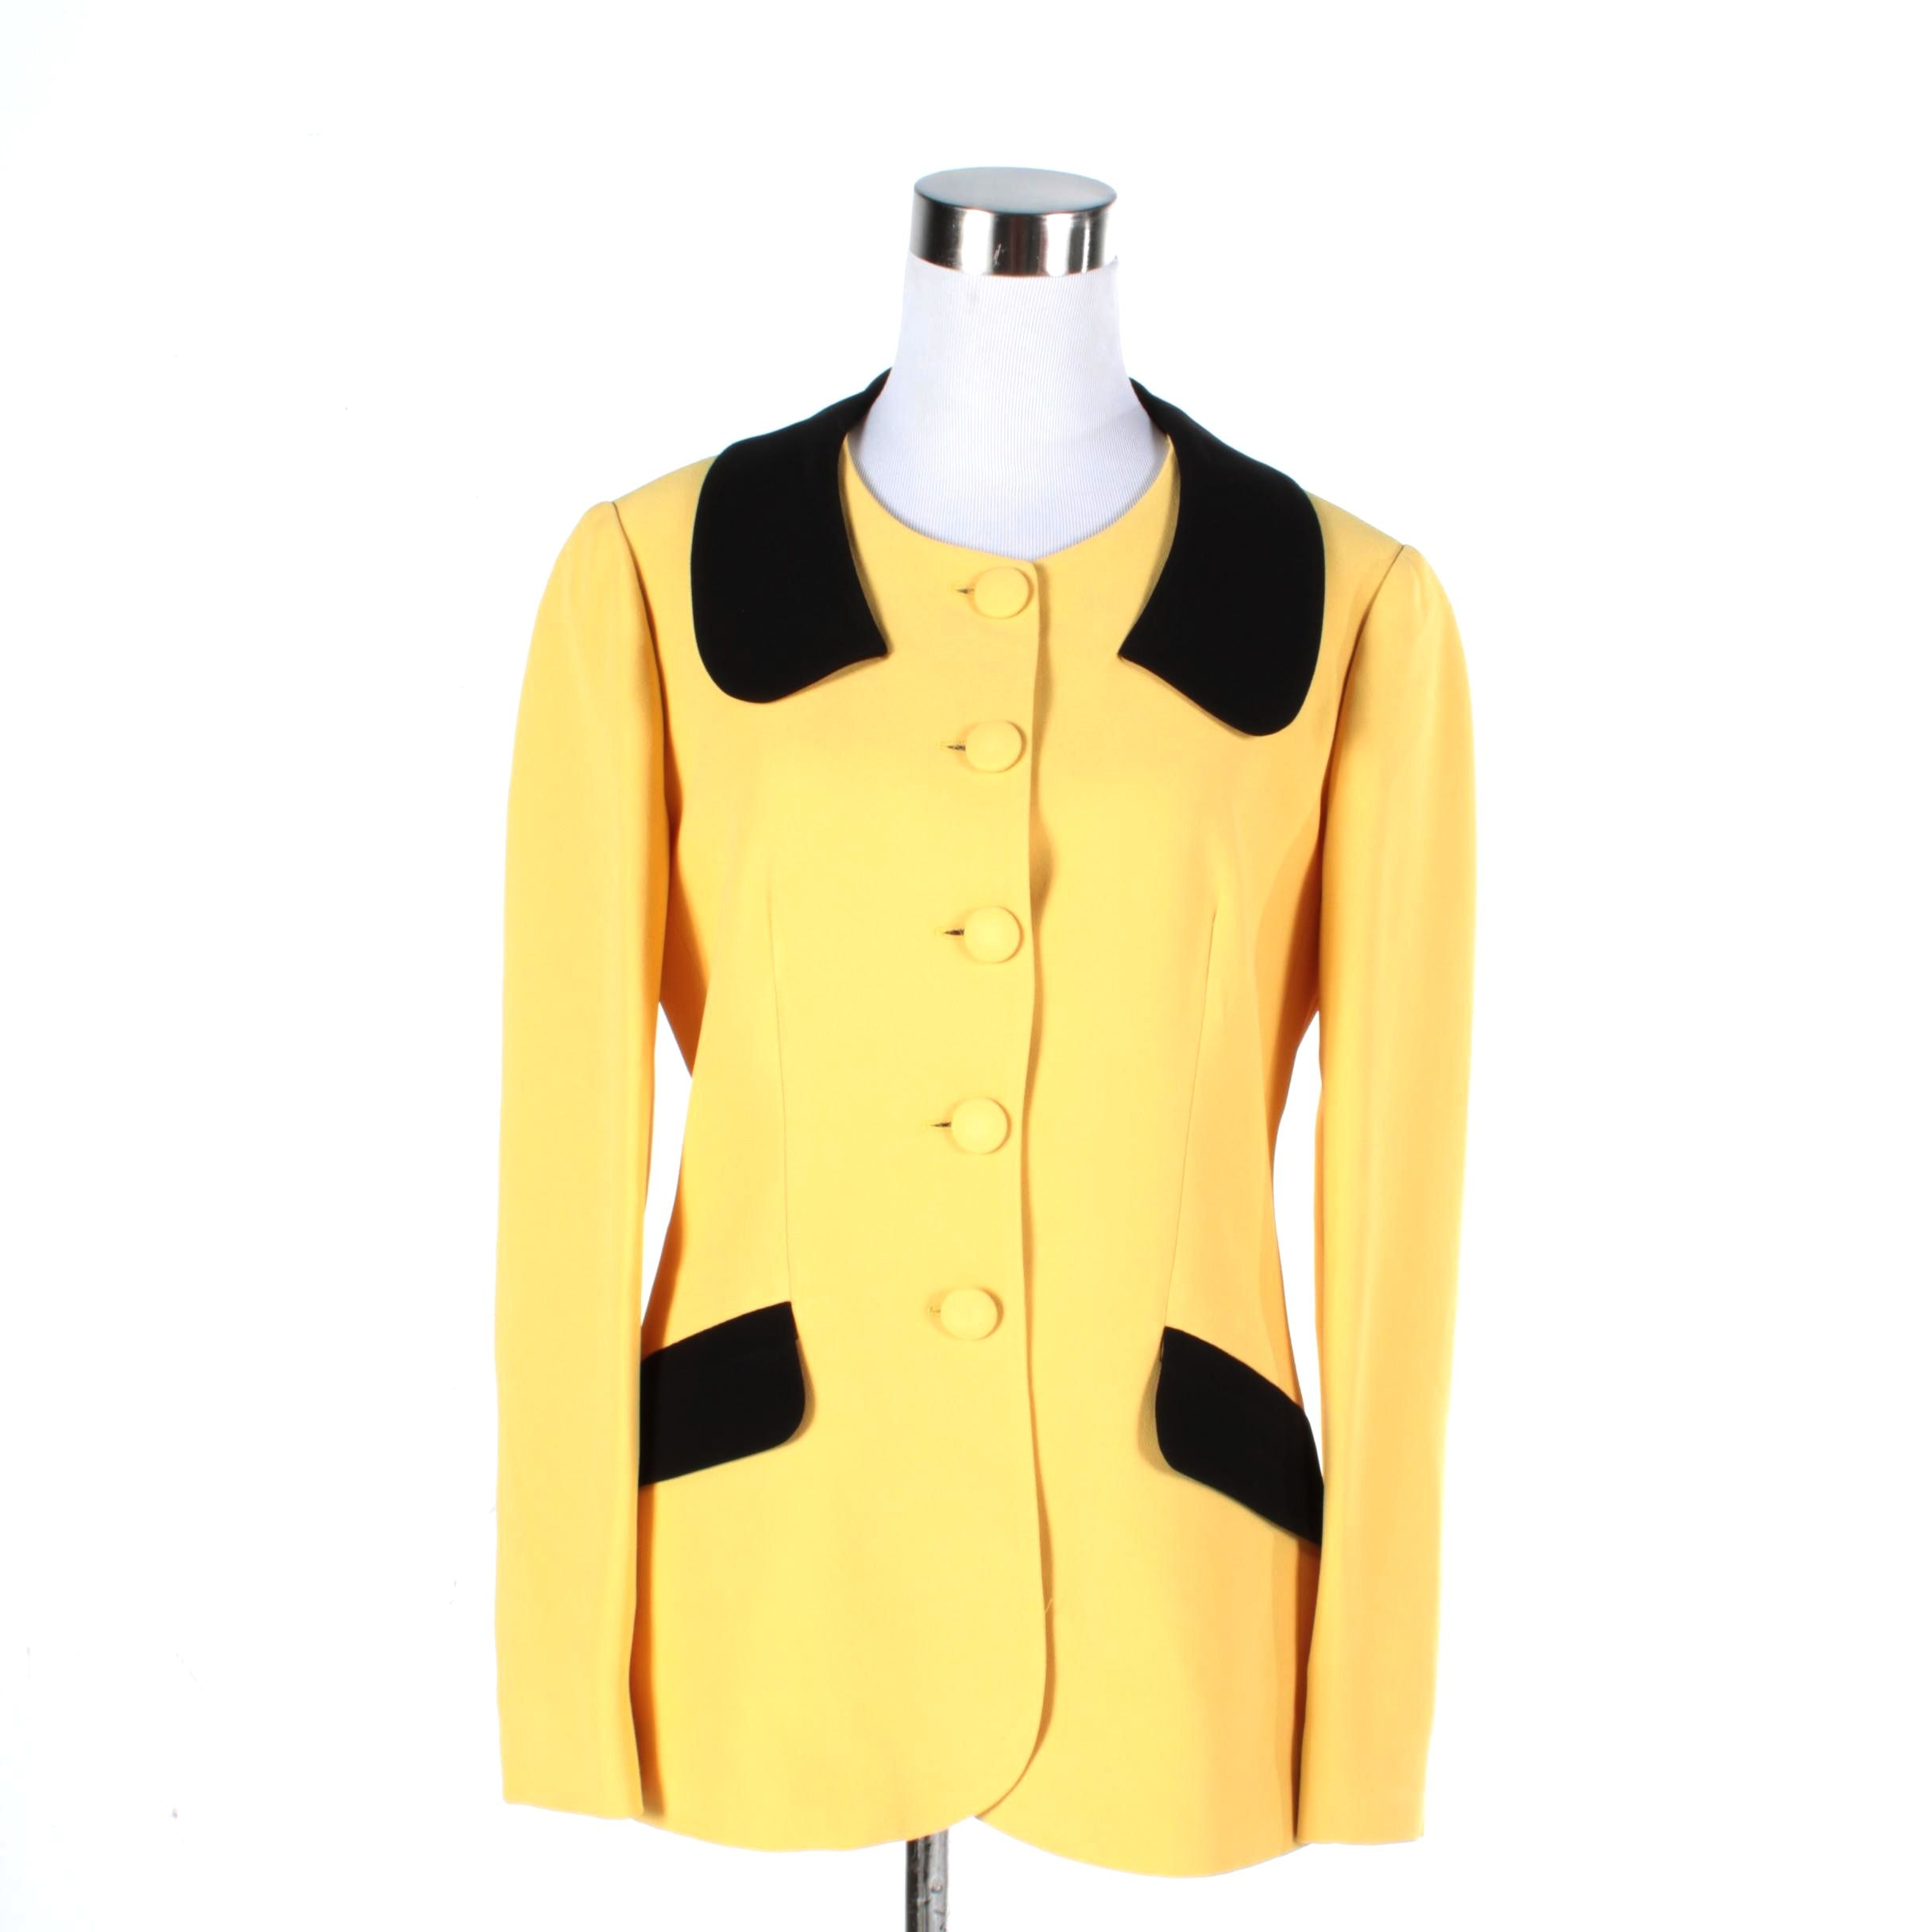 Women's Cheap and Chic by Moschino Yellow and Black Suit Jacket